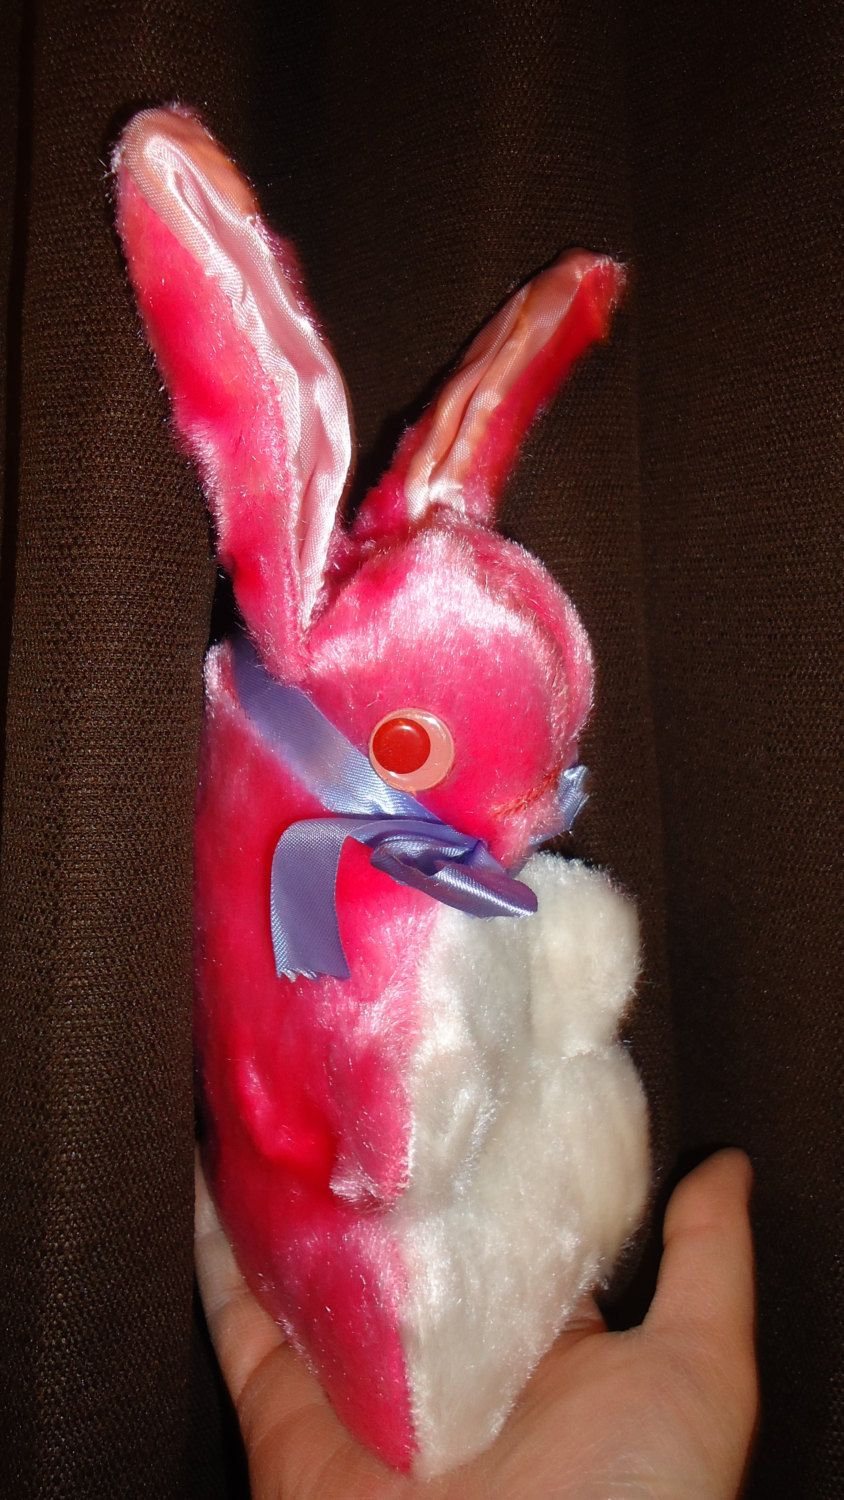 Vintage bunny Easter pink stuffed toy doll